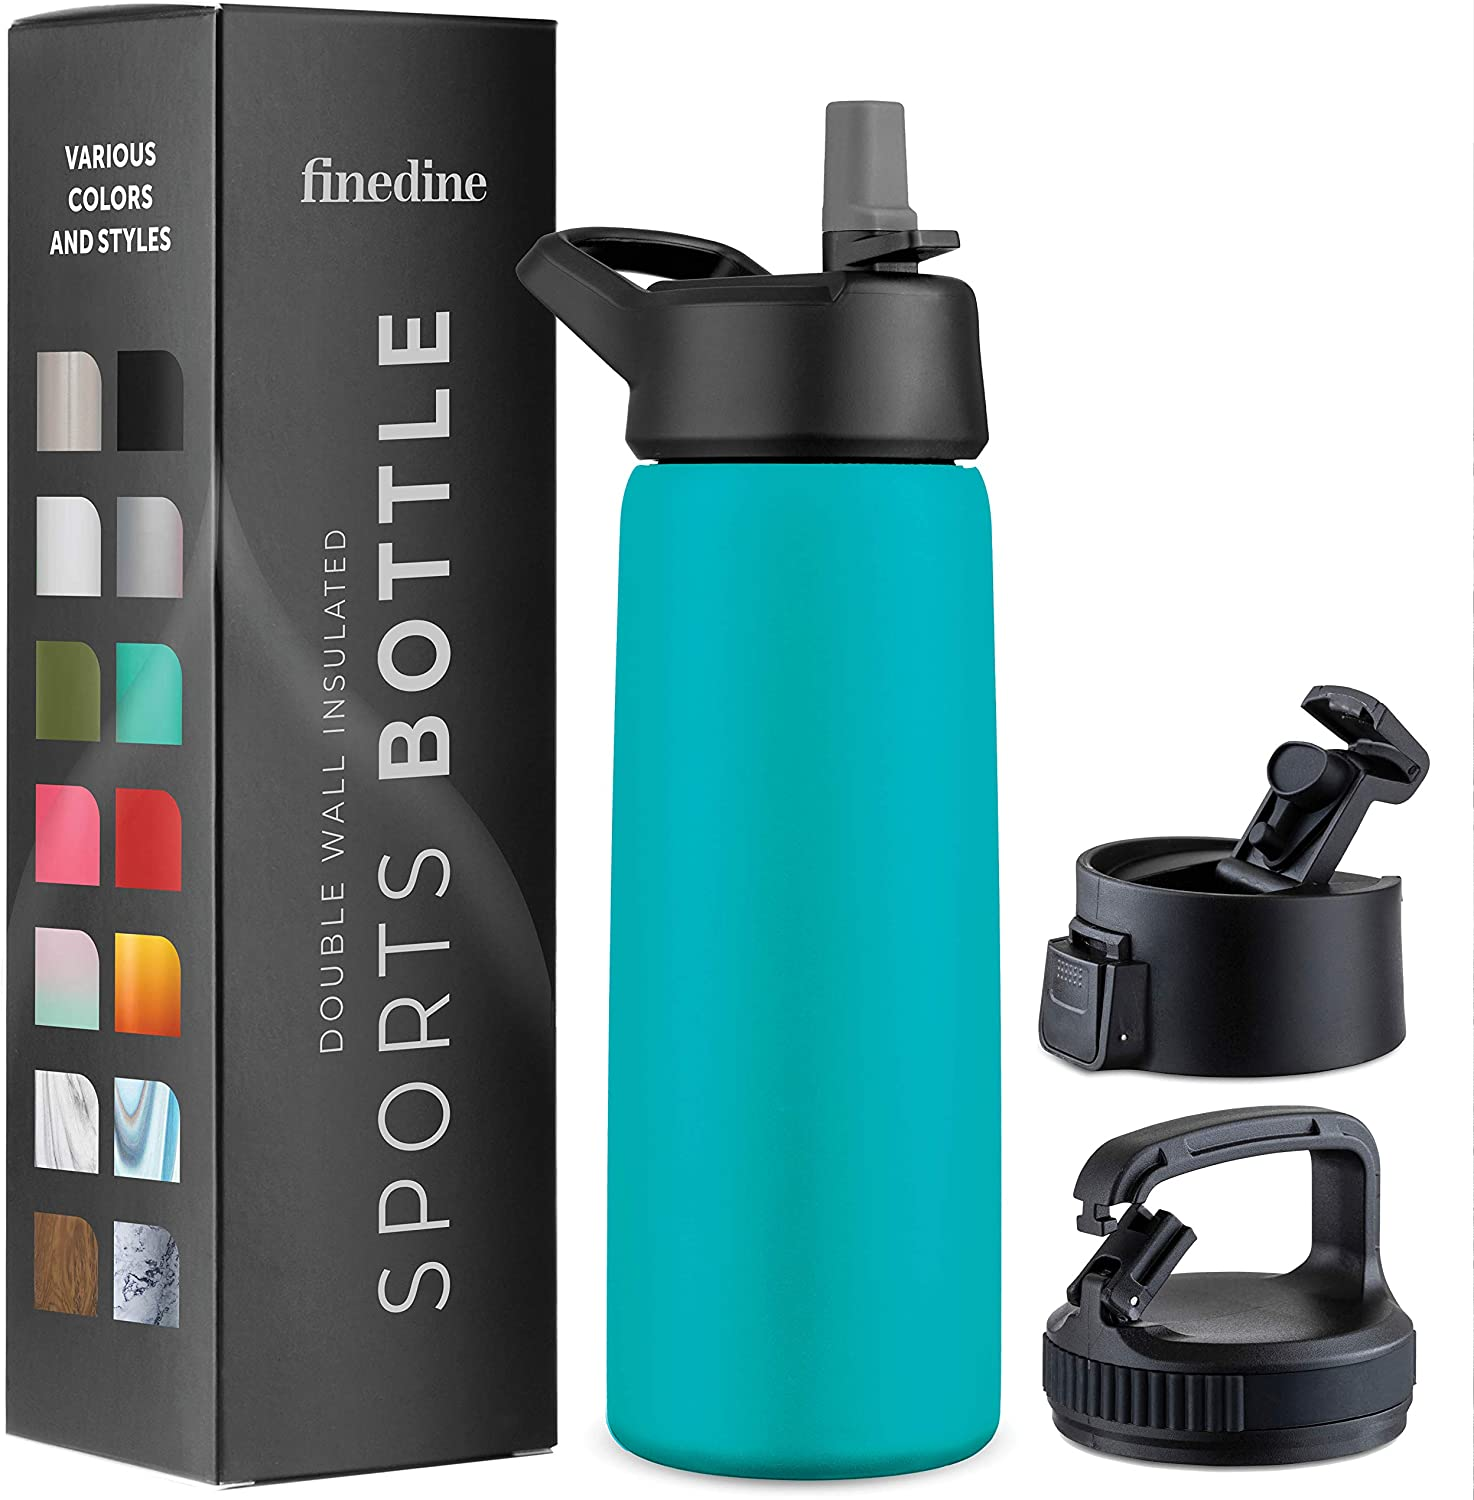 Inky Raven Black Insulated Water Bottles Sports Canteen Water Bottle Great for Hiking /& Biking Keeps Hot and Cold 20 oz Triple Insulated Stainless Steel Water Bottle Flip Top Lid -